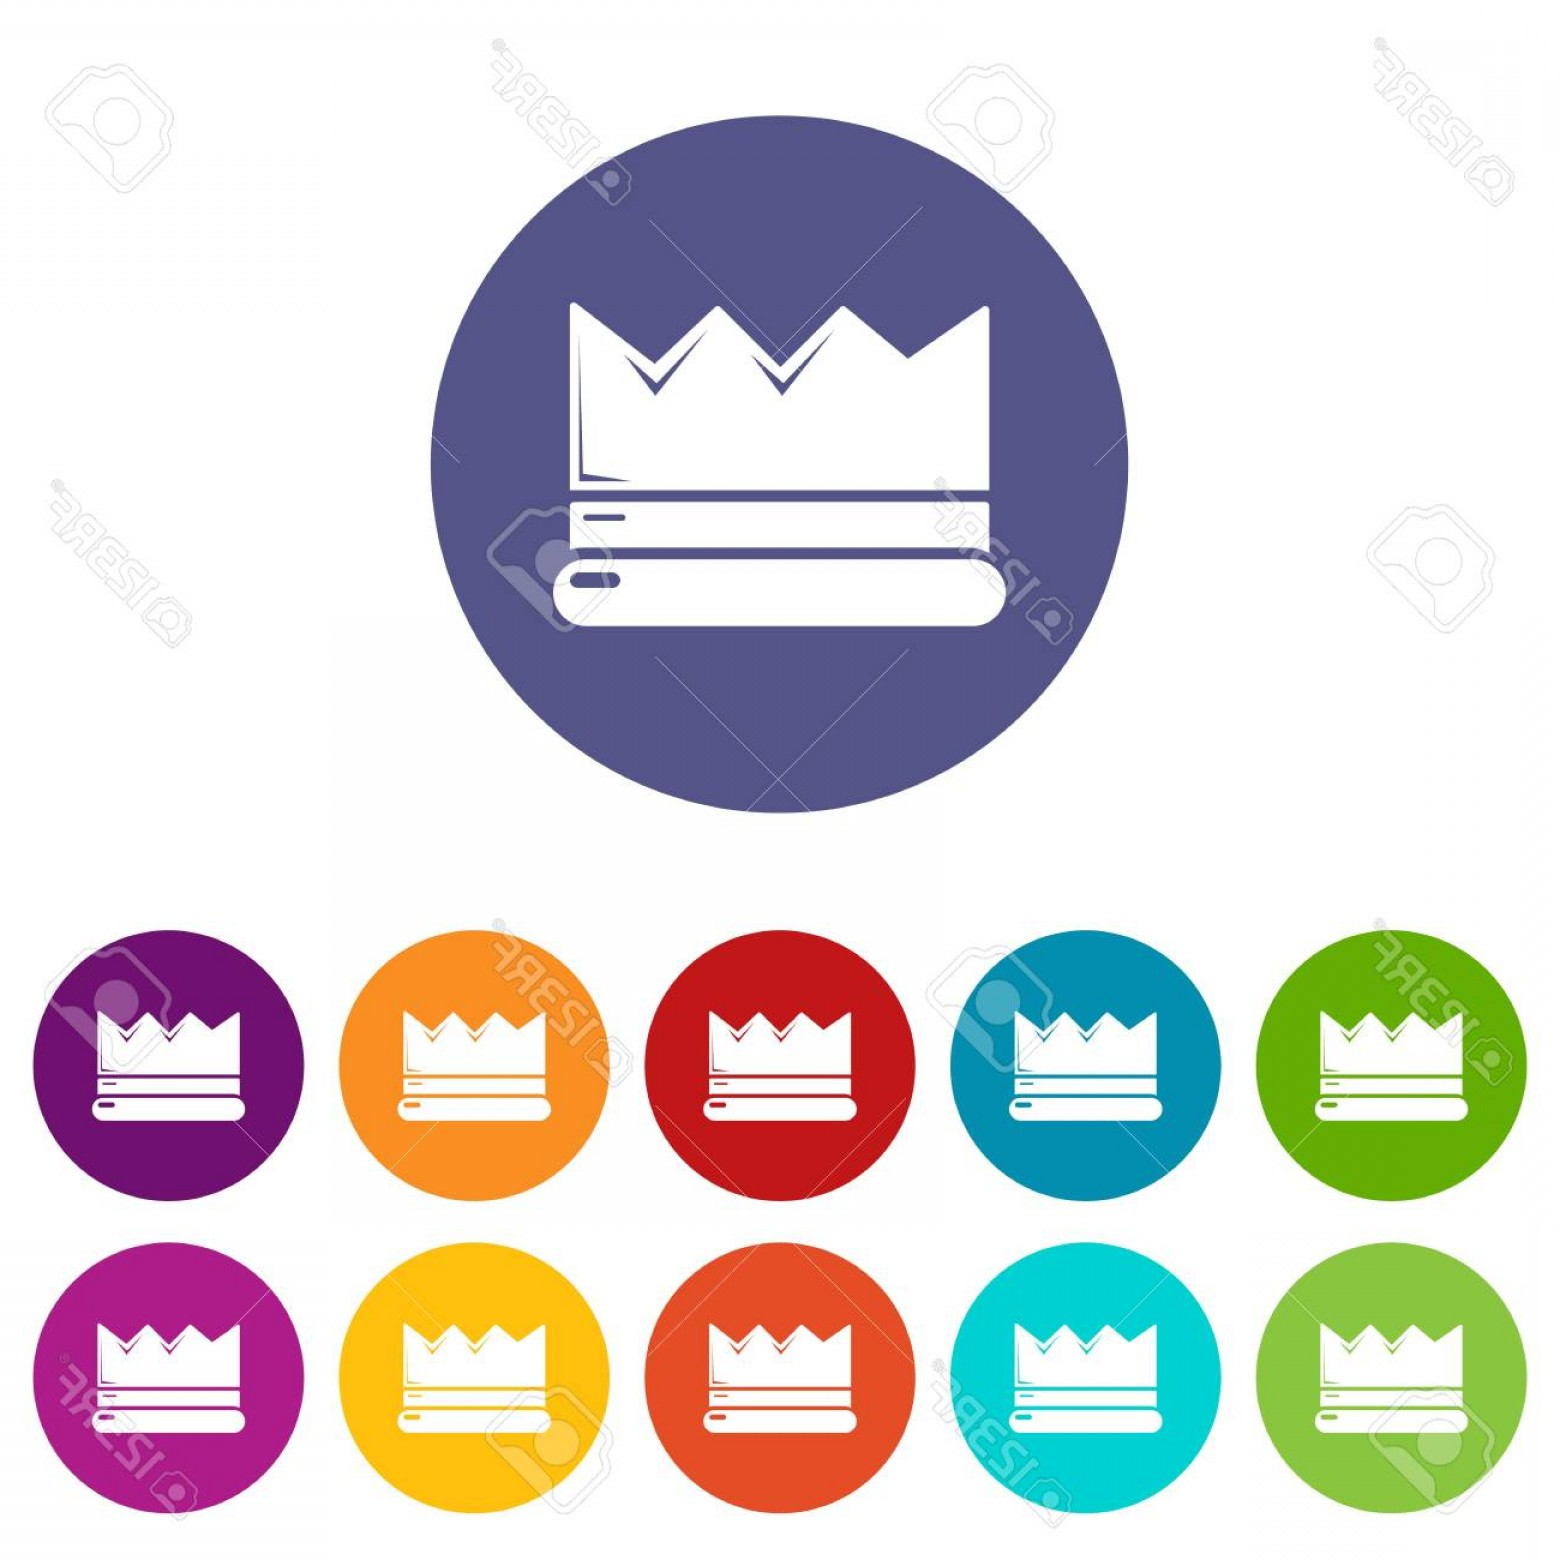 Silver Prince Vector: Photostock Vector Silver Crown Icons Color Set Vector For Any Web Design On White Background